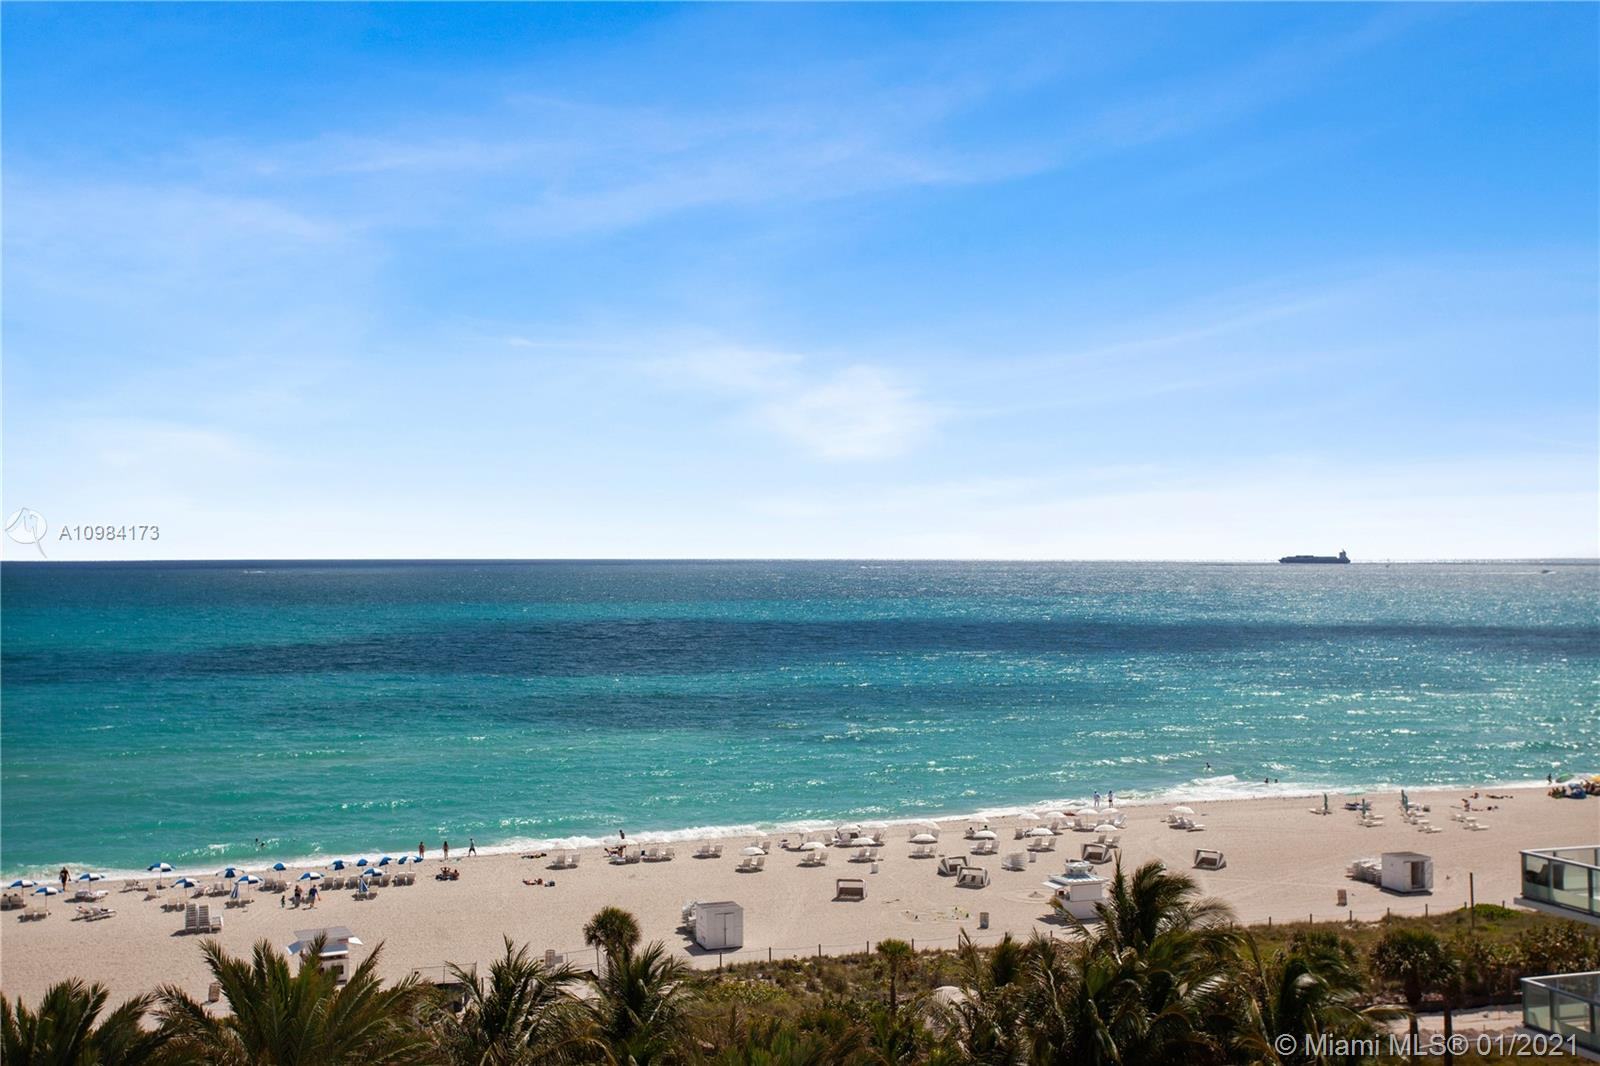 Stunning flow-through 3-bed corner unit with direct ocean and downtown views. Enjoy the sunrise and sunset from two balconies. Unit 901 features a private elevator, modern Miele appliances, and an interior with details and appointments to serve both luxury and comfort. Mosaic Miami Beach is a boutique luxury condominium featuring private elevators, a state-of-the-art fitness center, beach service and an incredible location adjacent to Faena, Edition, Fontainebleau, SoHo House and top hotels.